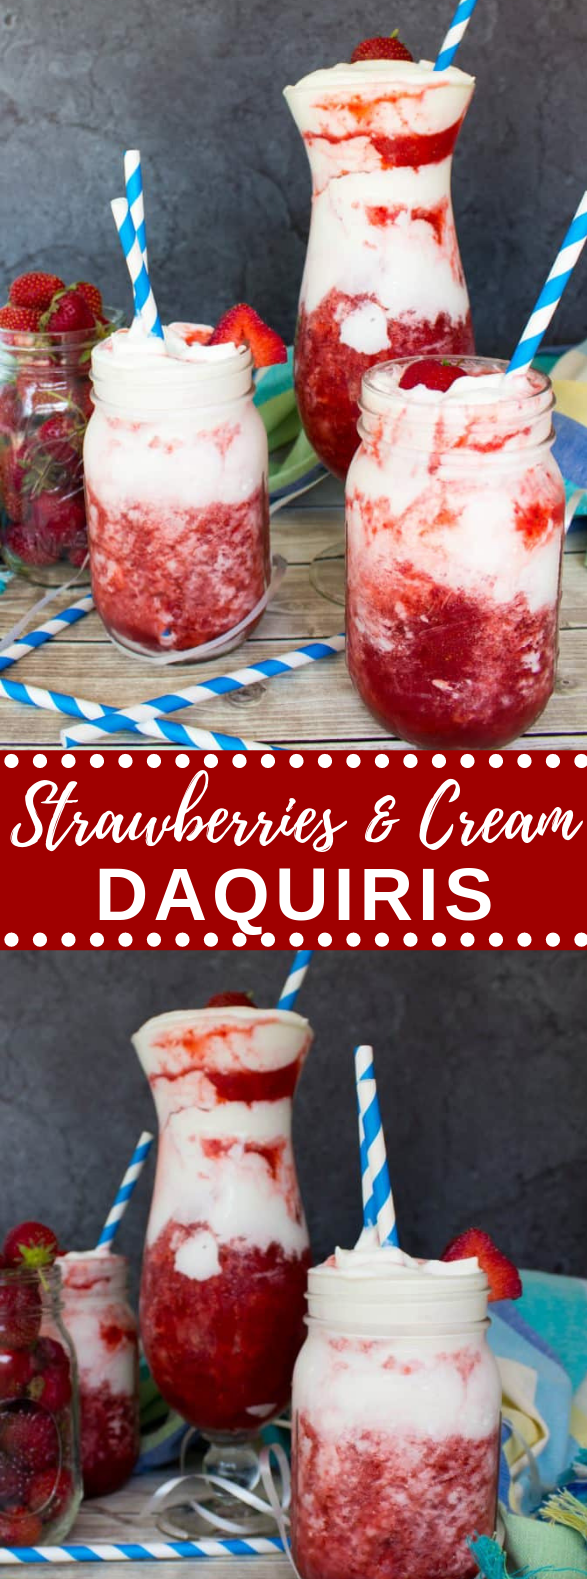 Strawberries & Cream Daiquiris #bestrecipe #drinks